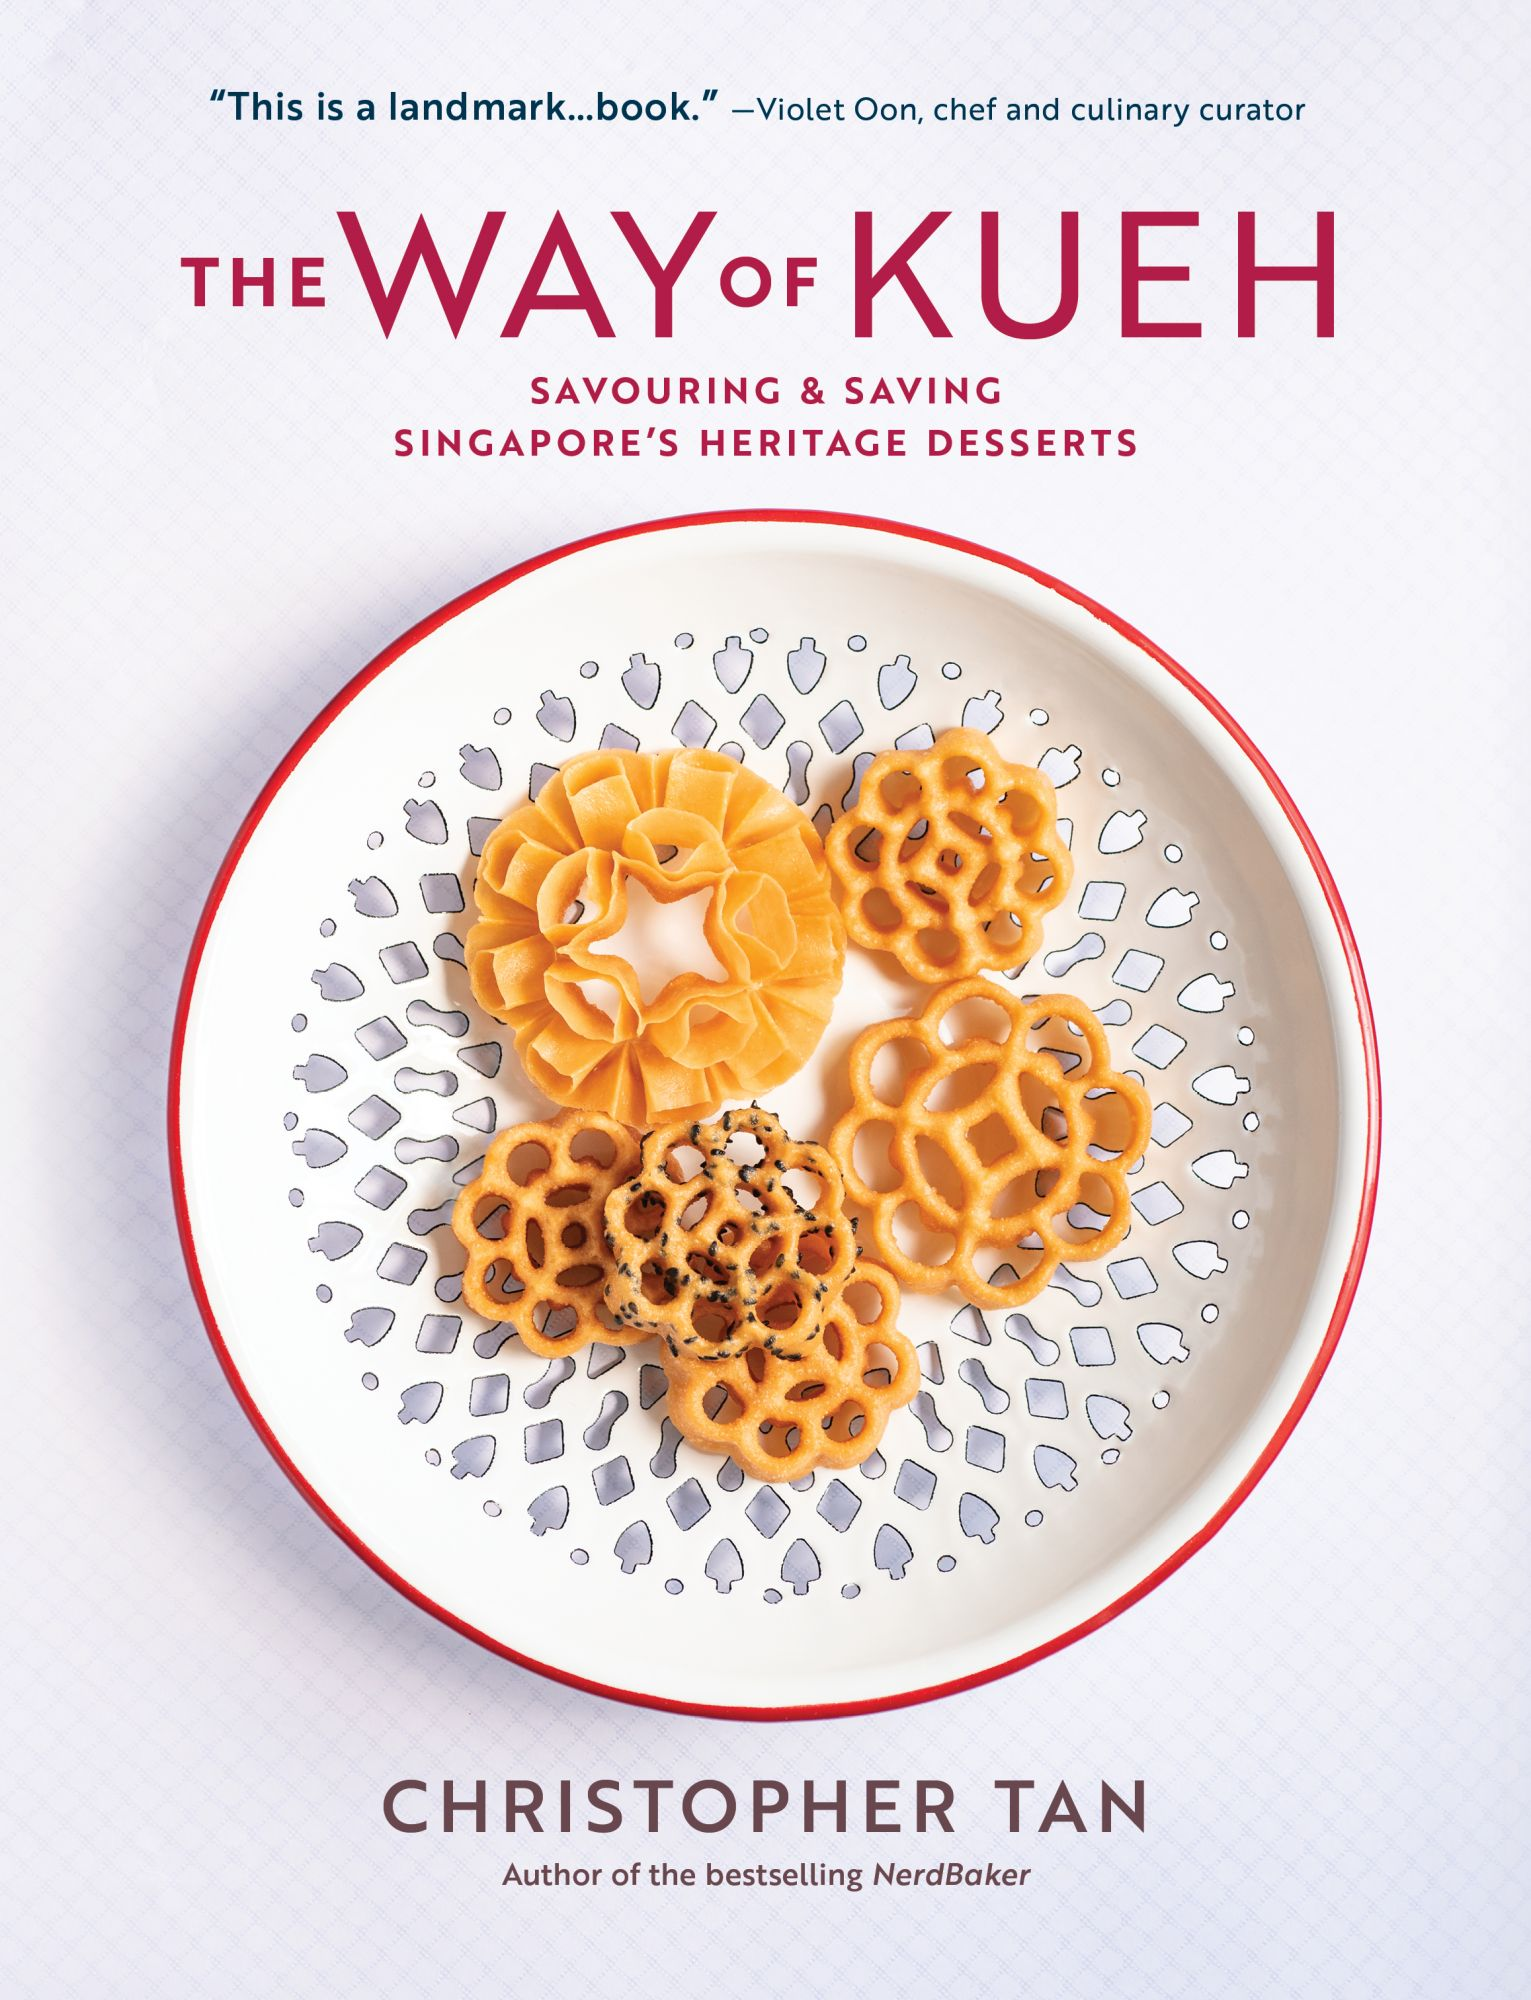 The Most Definitive Book About Kueh in Singapore Makes its Debut